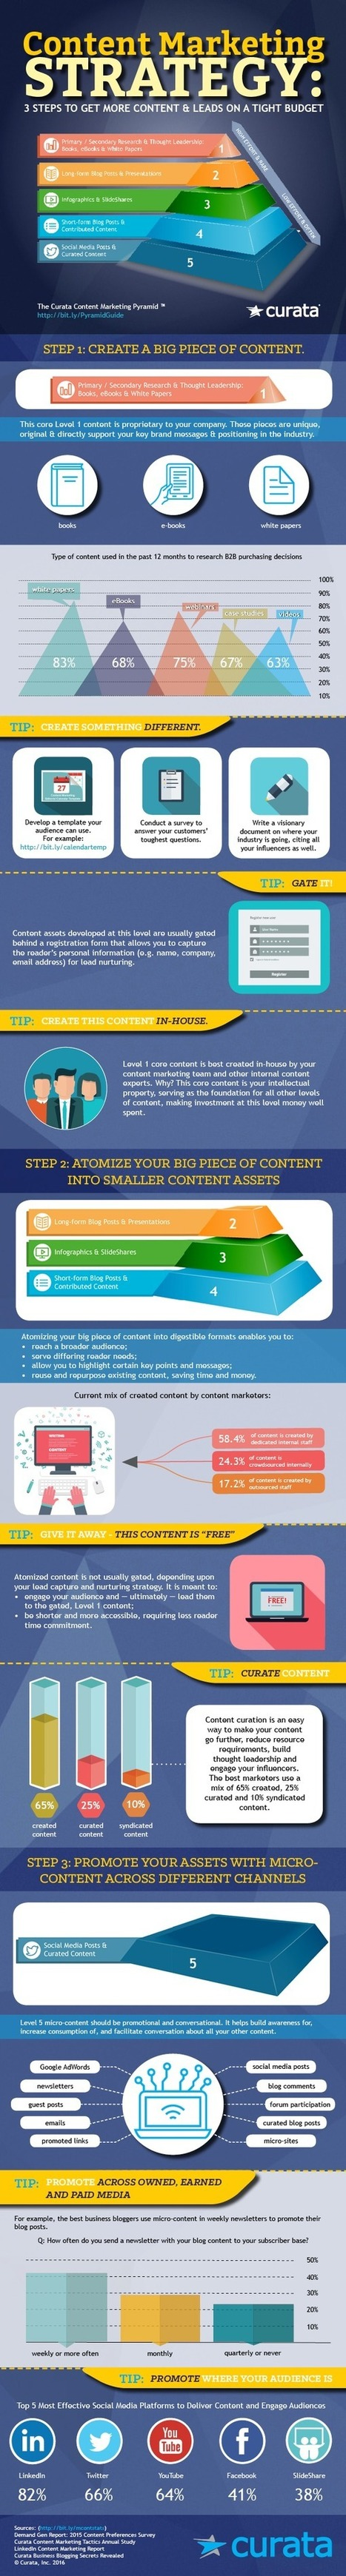 The Ultimate Content Marketing Strategy [Infographic] | Content Marketing Forum | Great Infographics | Scoop.it